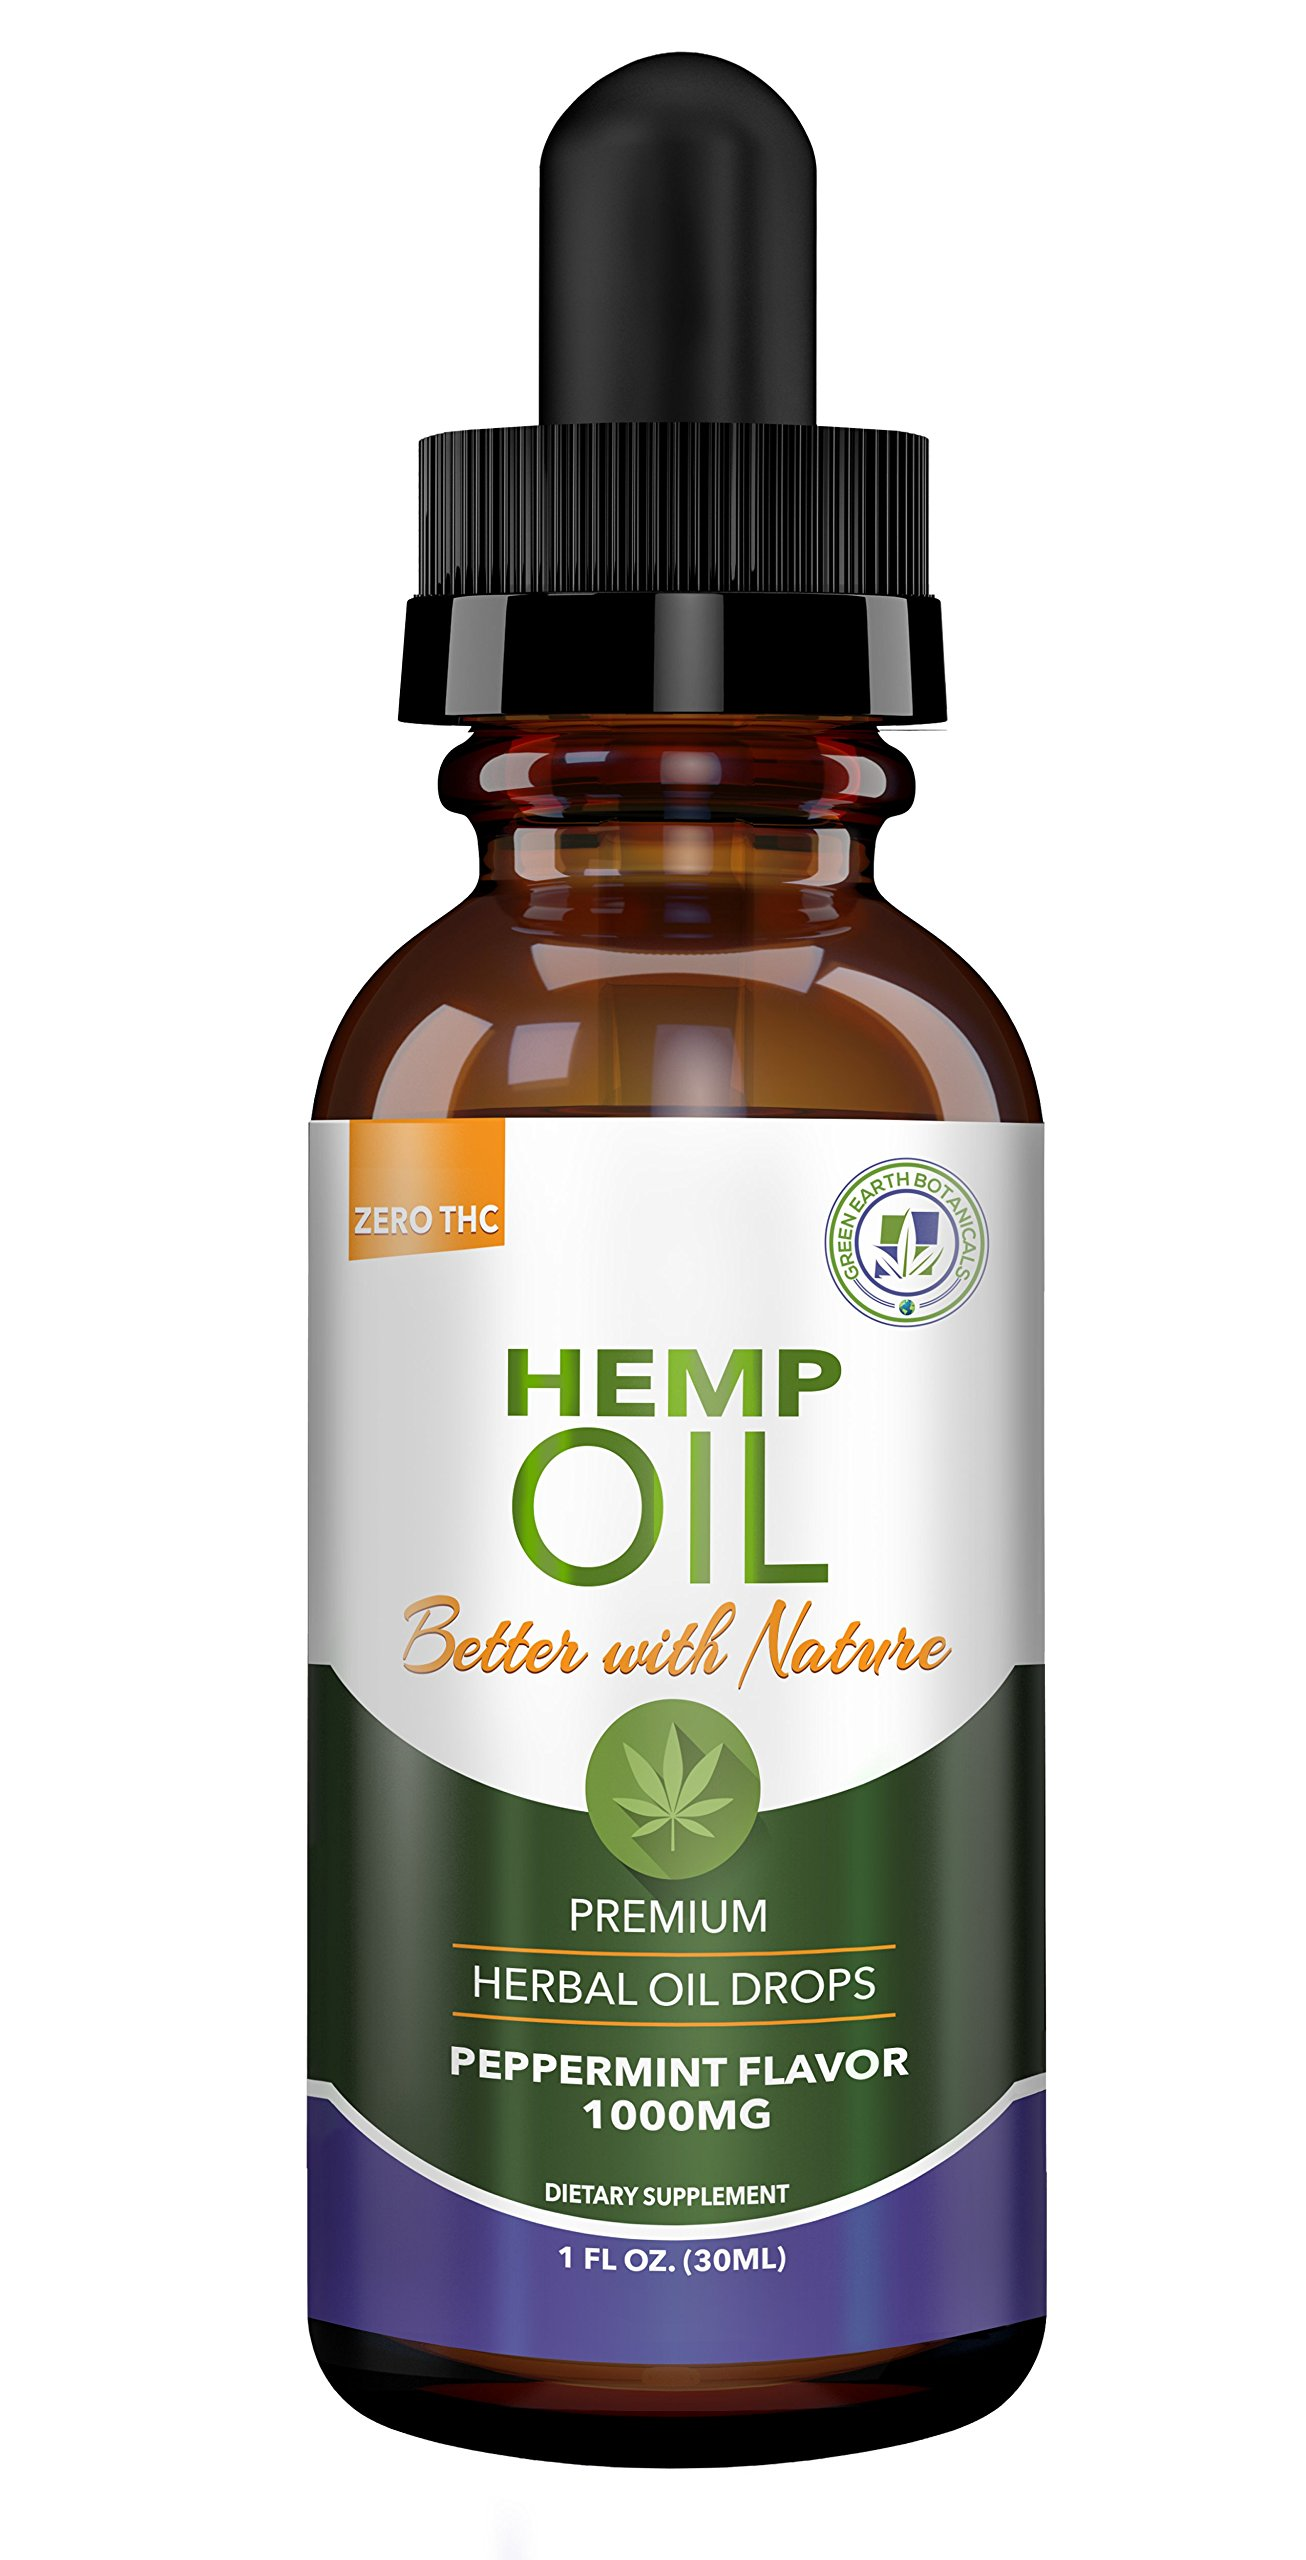 Hemp Oil 1000mg for Fast Pain Relief :: Anxiety, Inflammation, Sleep, Nausea, Depression :: Premium Herbal Drops :: MCT Oil Packed with Omega 3,6 Fatty Acids :: Better with Nature 30 Day Supply